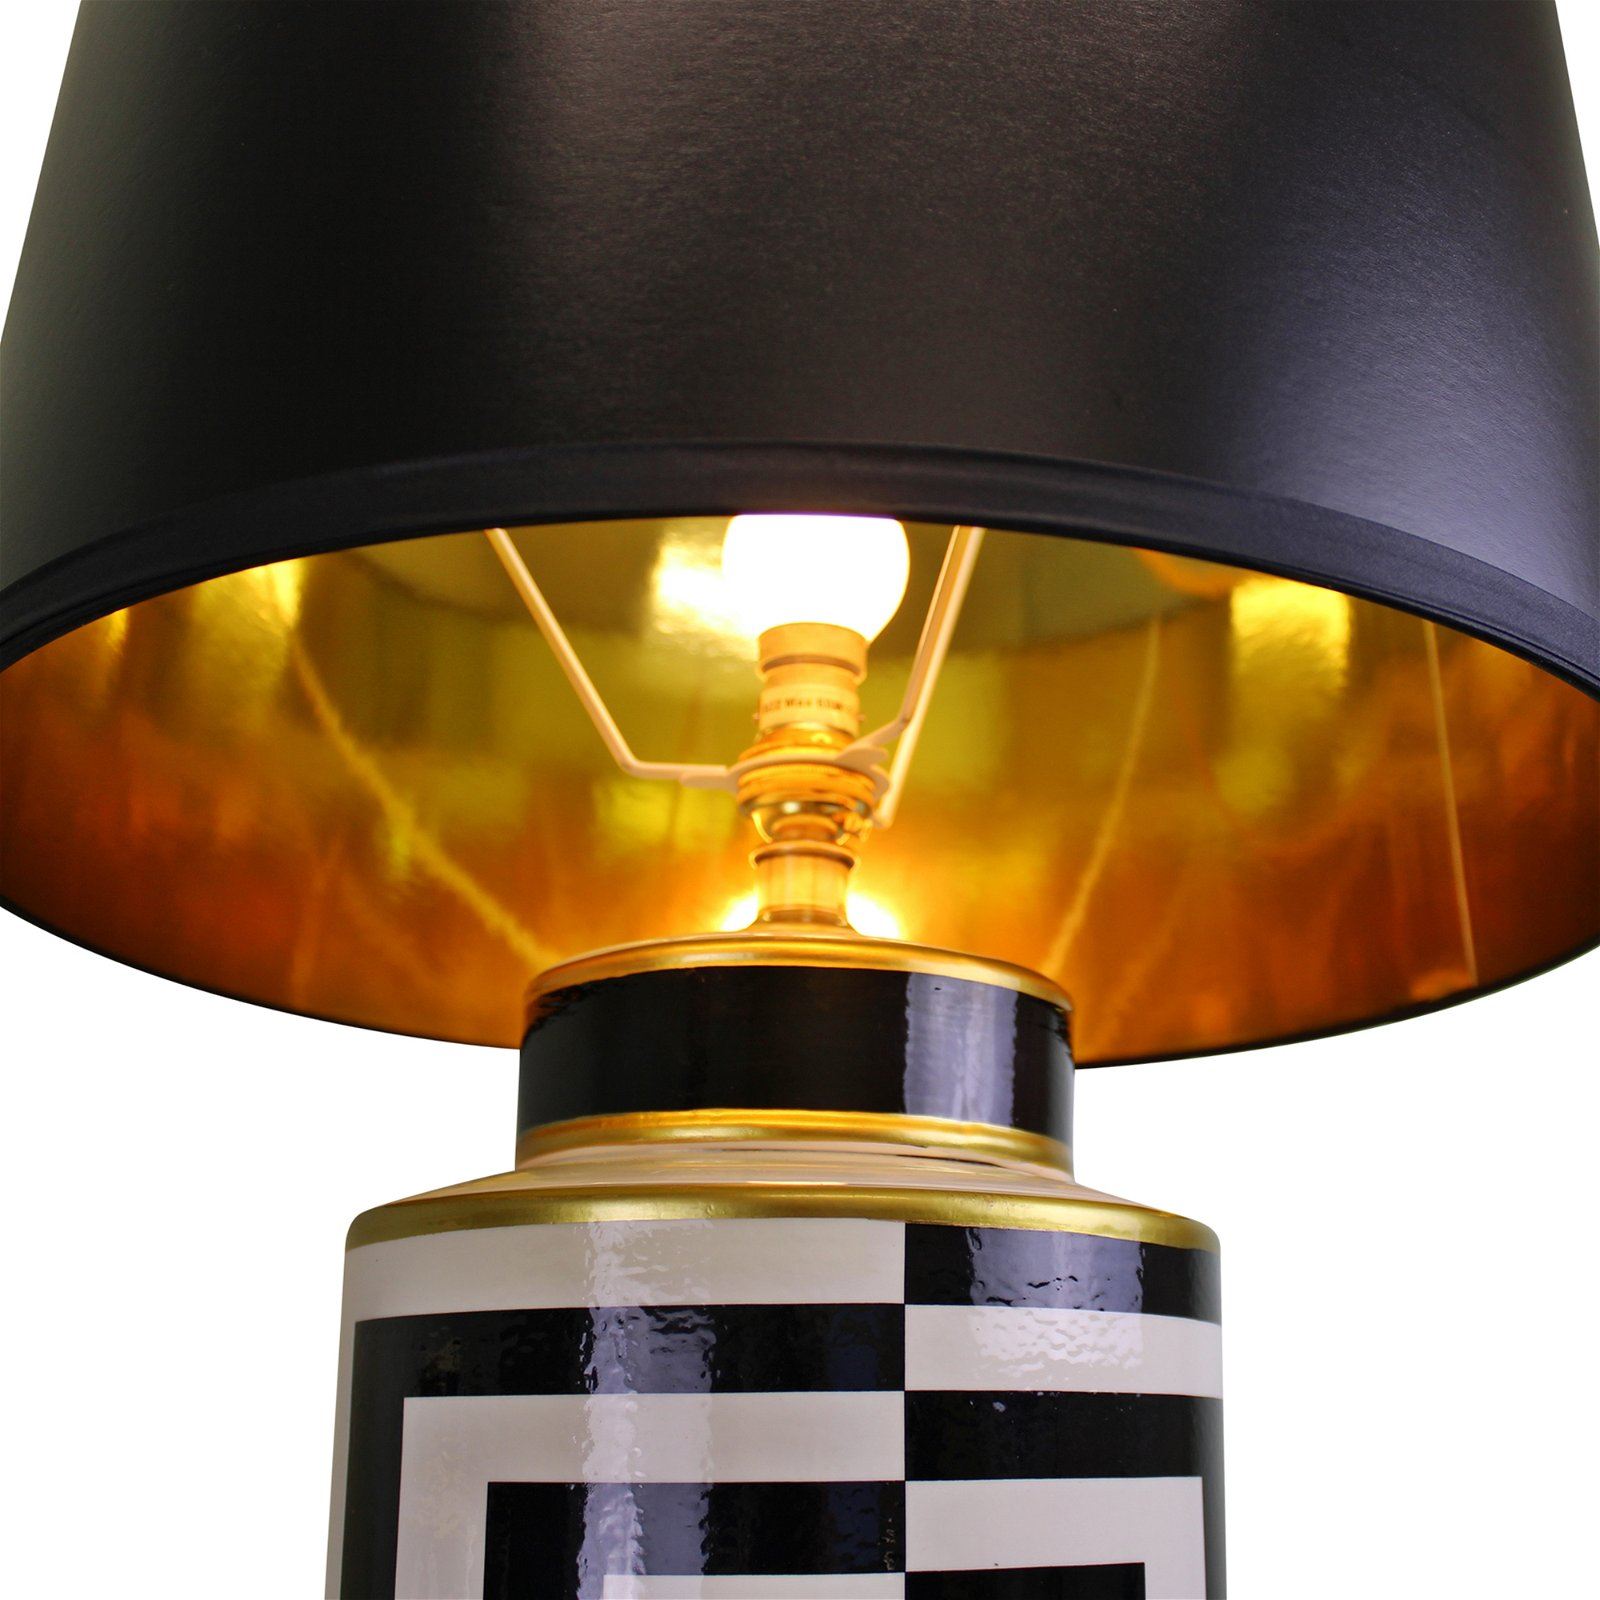 Black/White/Gold Ceramic Lamp, Geometric Design 66cm